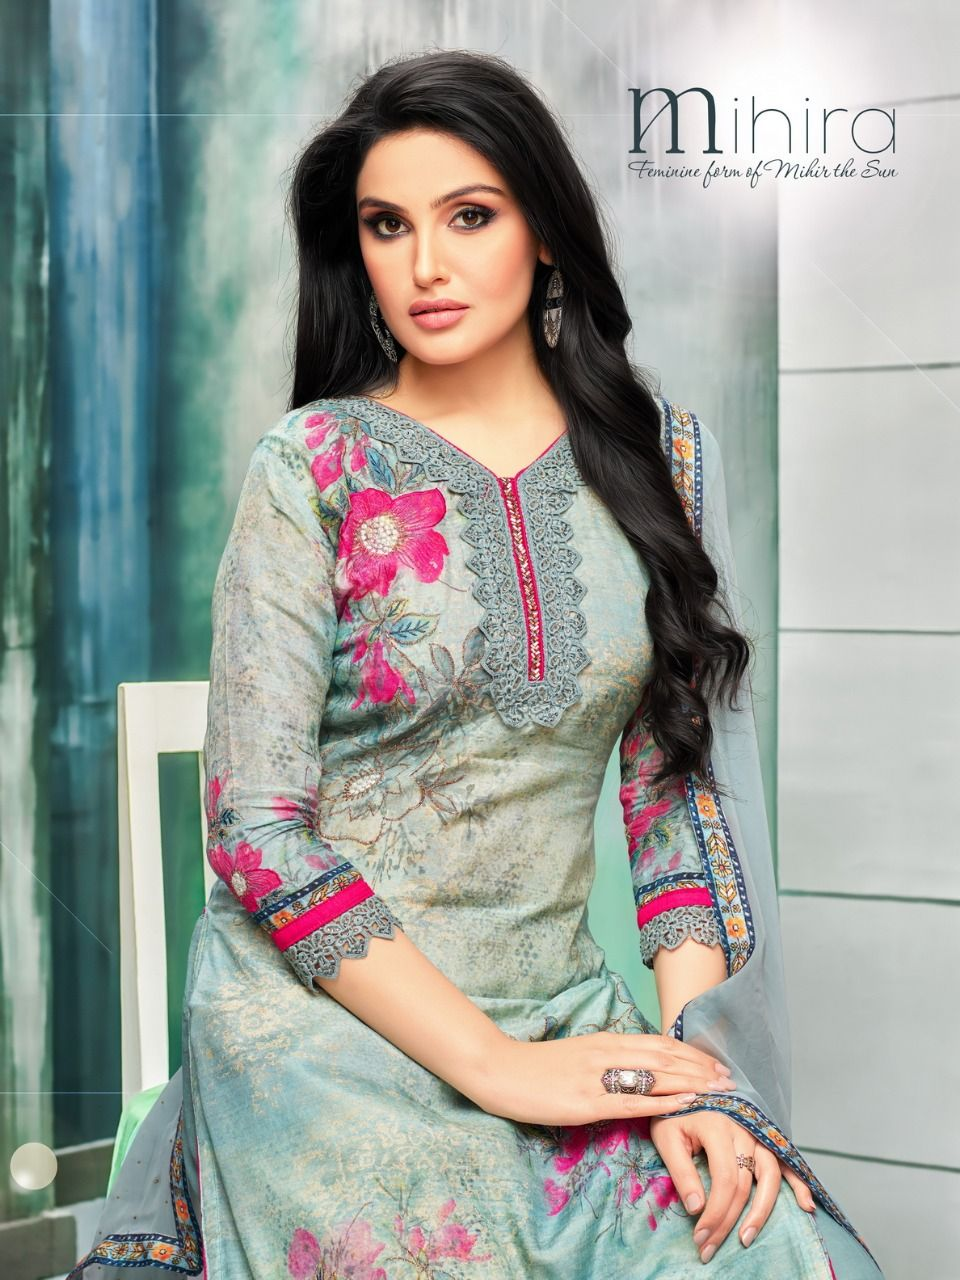 caefc778a9 Moof Fashion Mihira Digital Printed Pure Maslin with Embroidery Work Dress  Material Dealer Surat